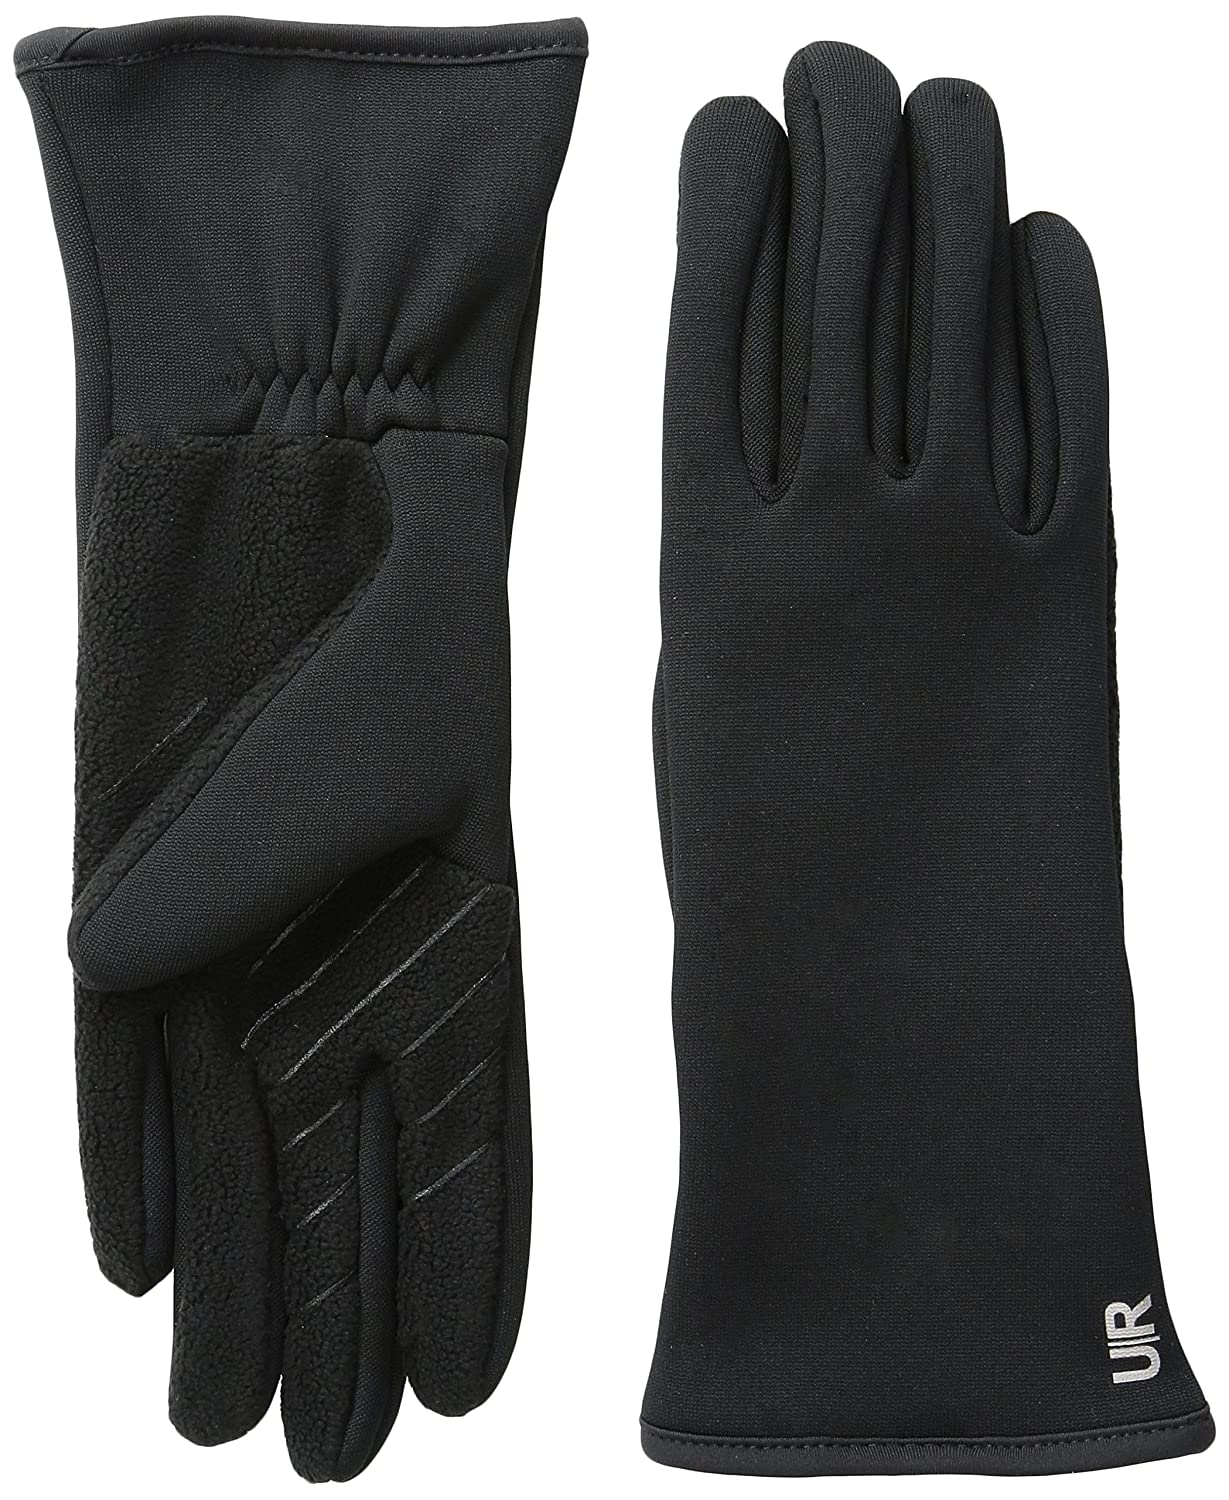 Mens leather gloves rei - U R Women S Rei Active Stretch Touchscreen Glove Black Small Medium At Amazon Women S Clothing Store